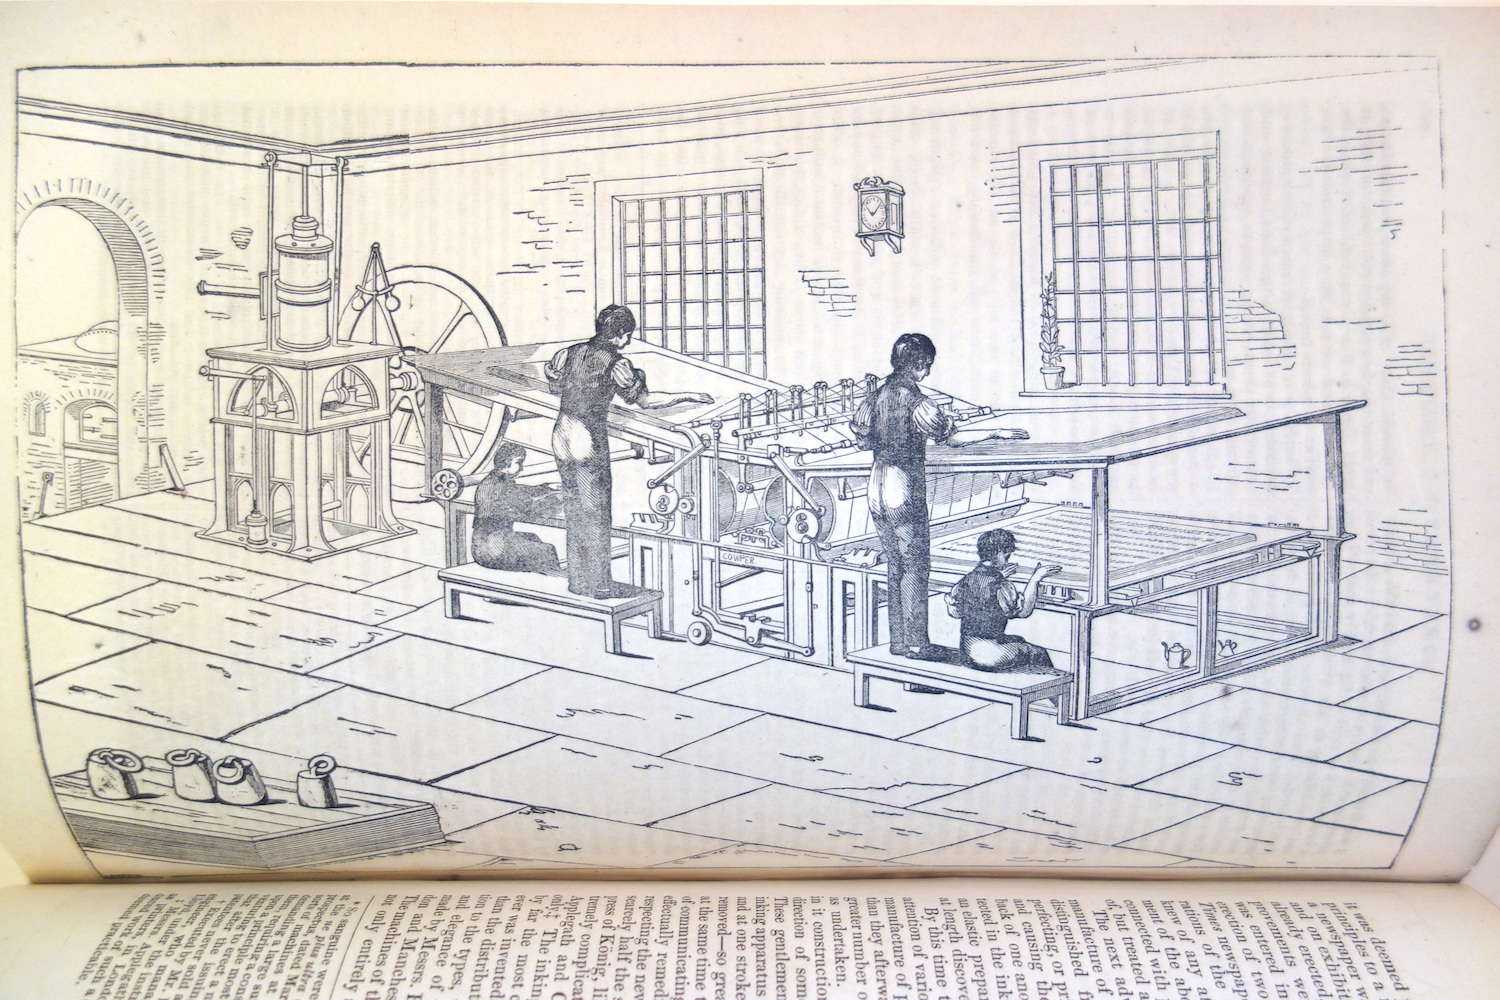 The Applegath & Cowper double cylinder perfecting machine has a Cowper nameplate in the image. It is operated by two men and two boys. The steam engine on the left is the Maudslay Table Engine design.